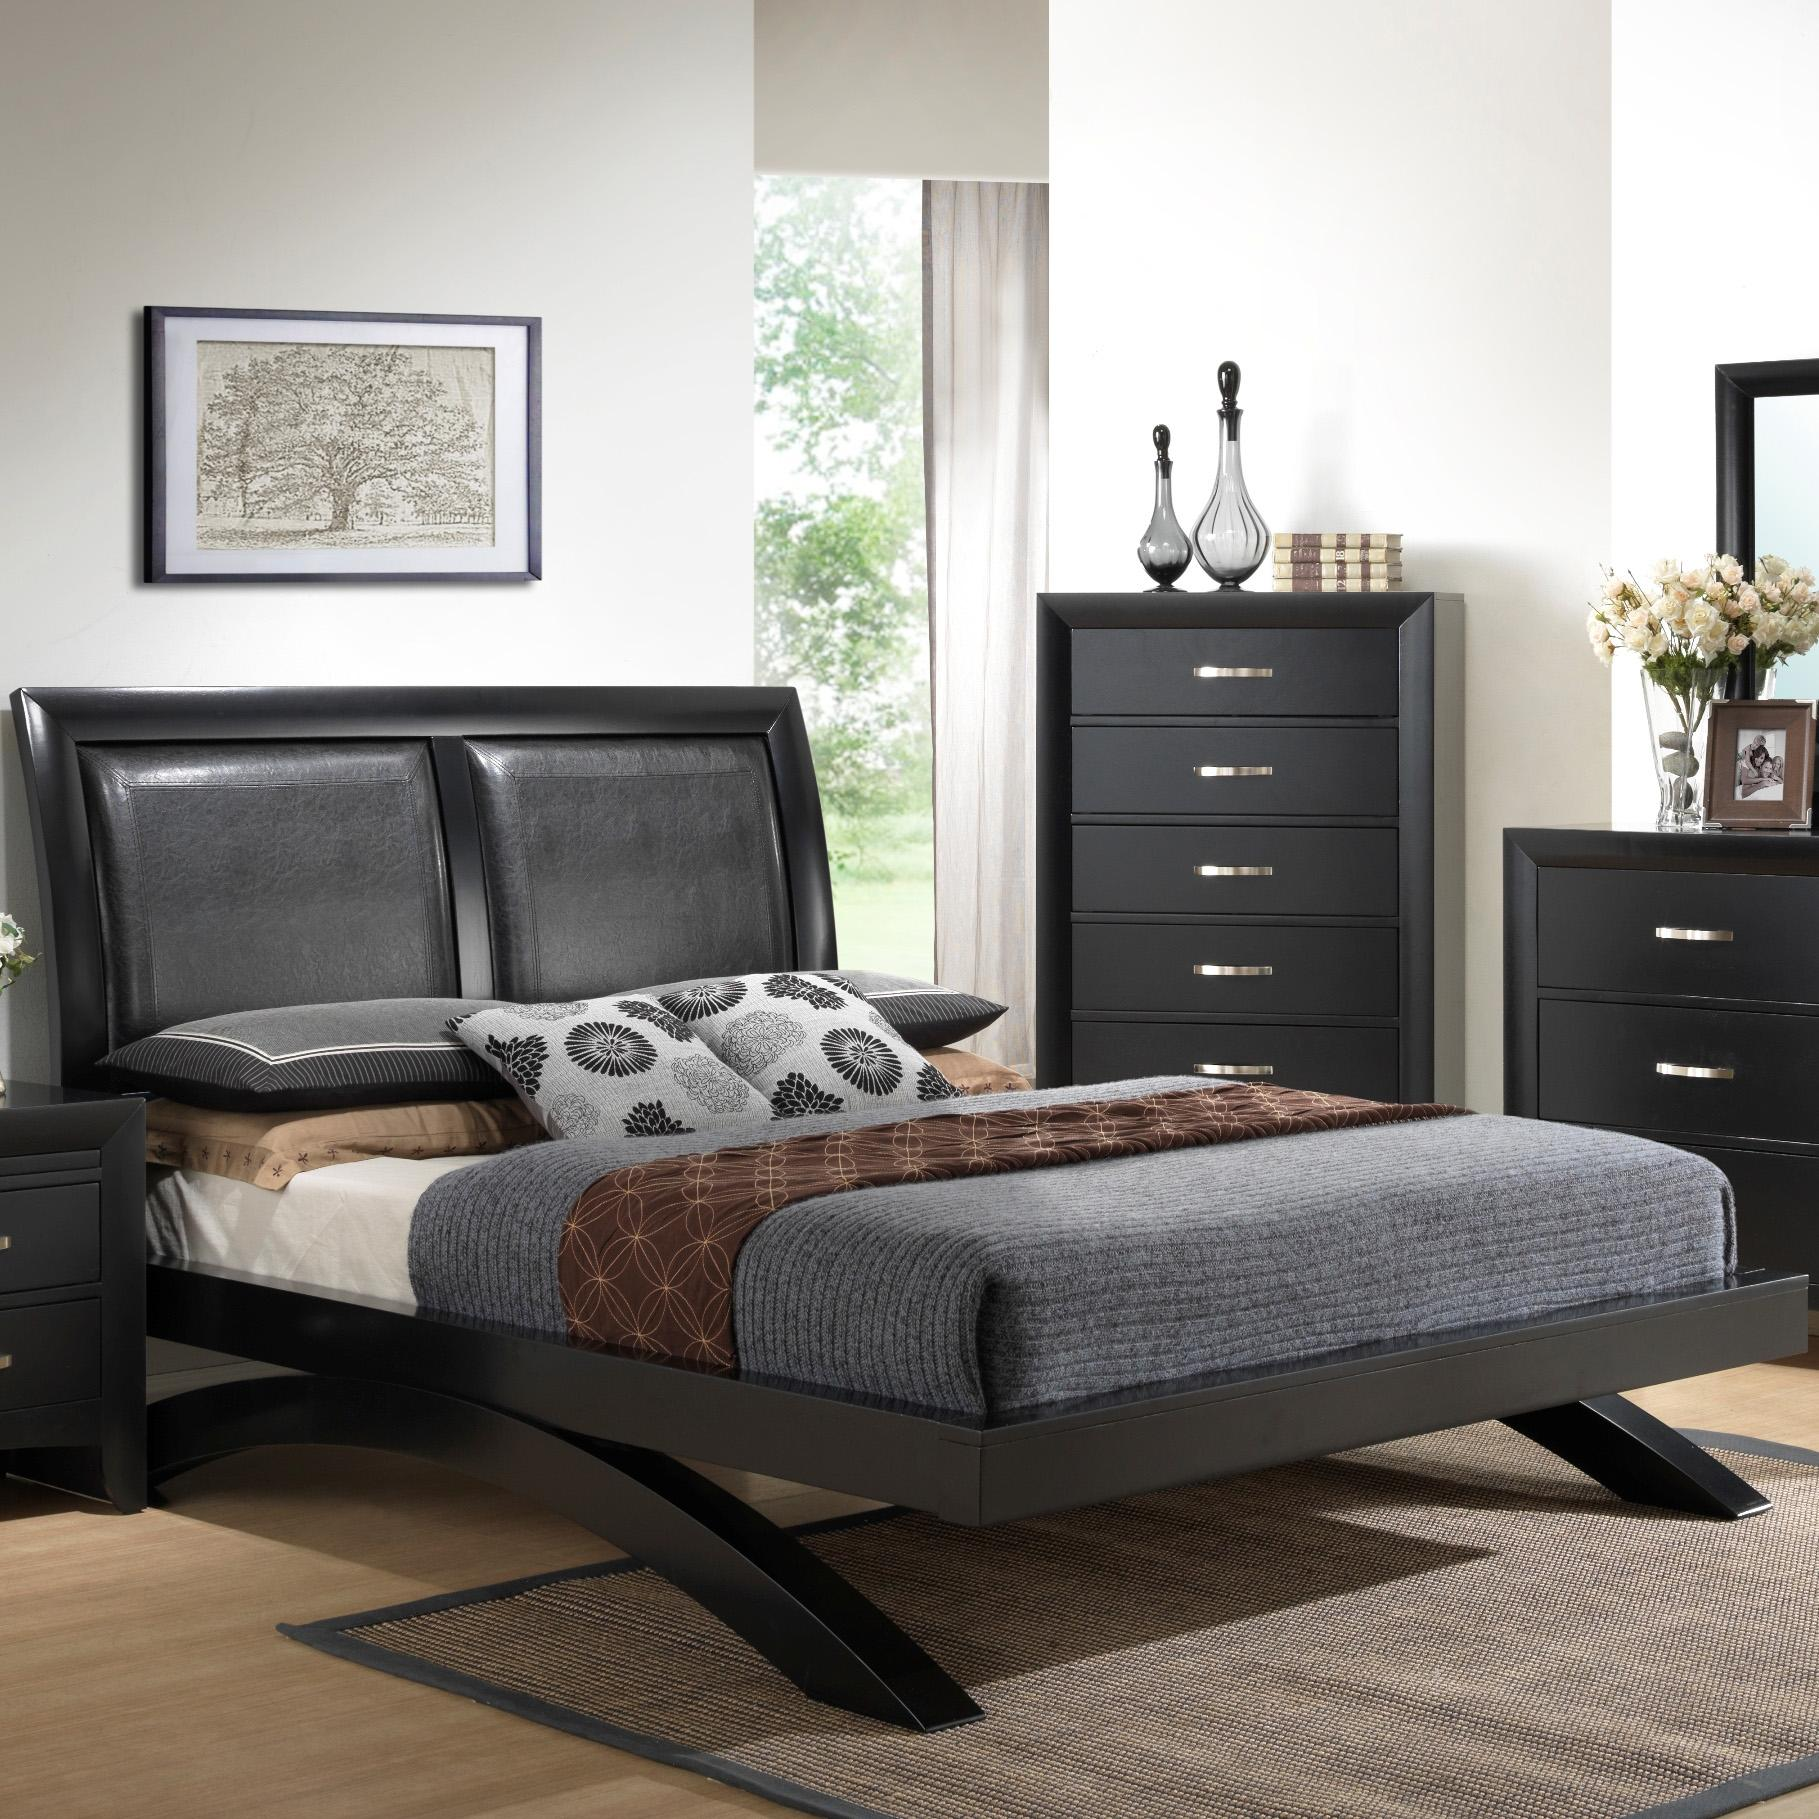 Galinda  Queen Headboard Bed by Crown Mark at Northeast Factory Direct